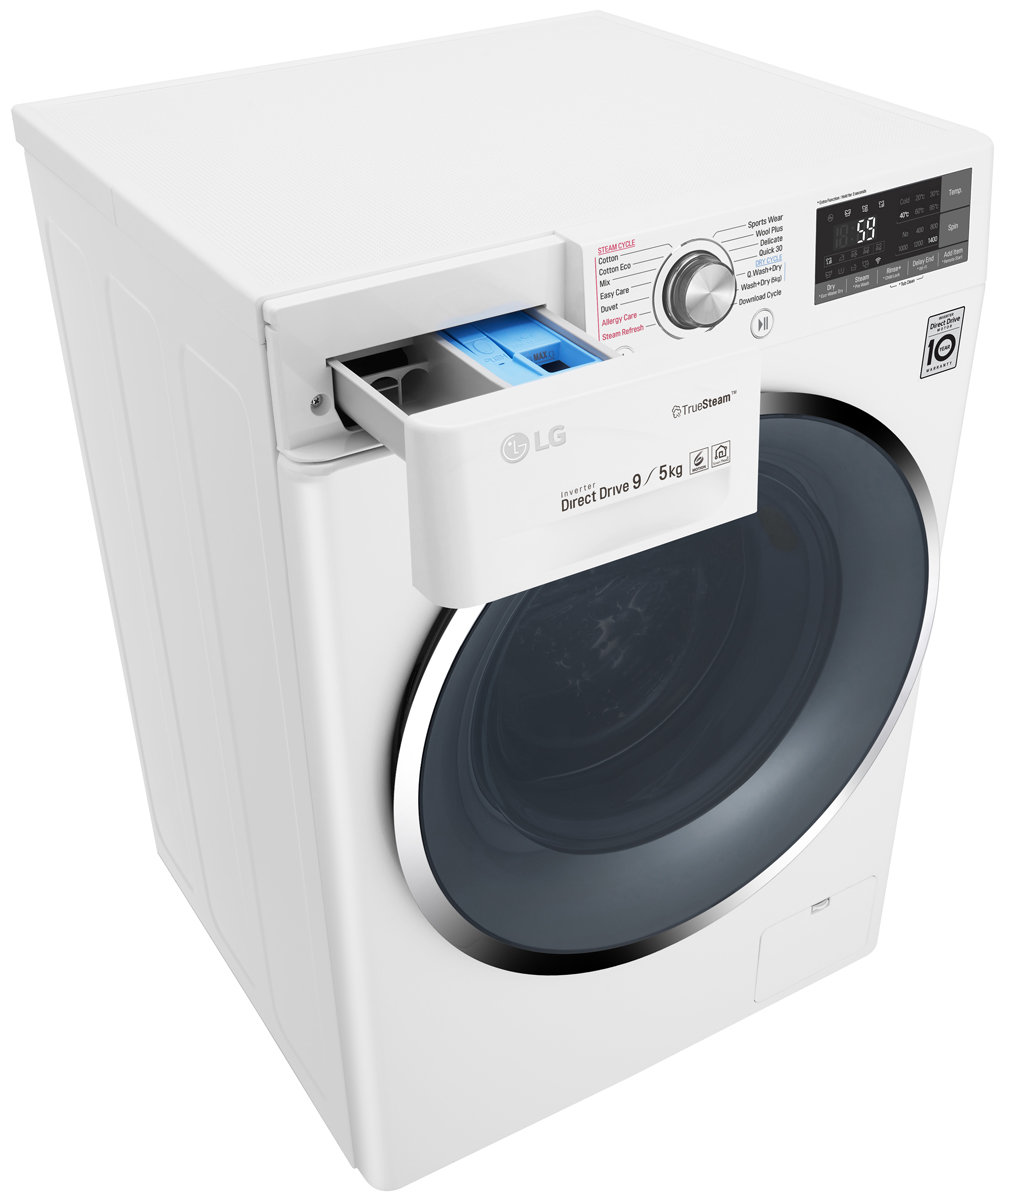 LG WDC1409HCW 9kg/5kg Washer Dryer Combo with True Steam